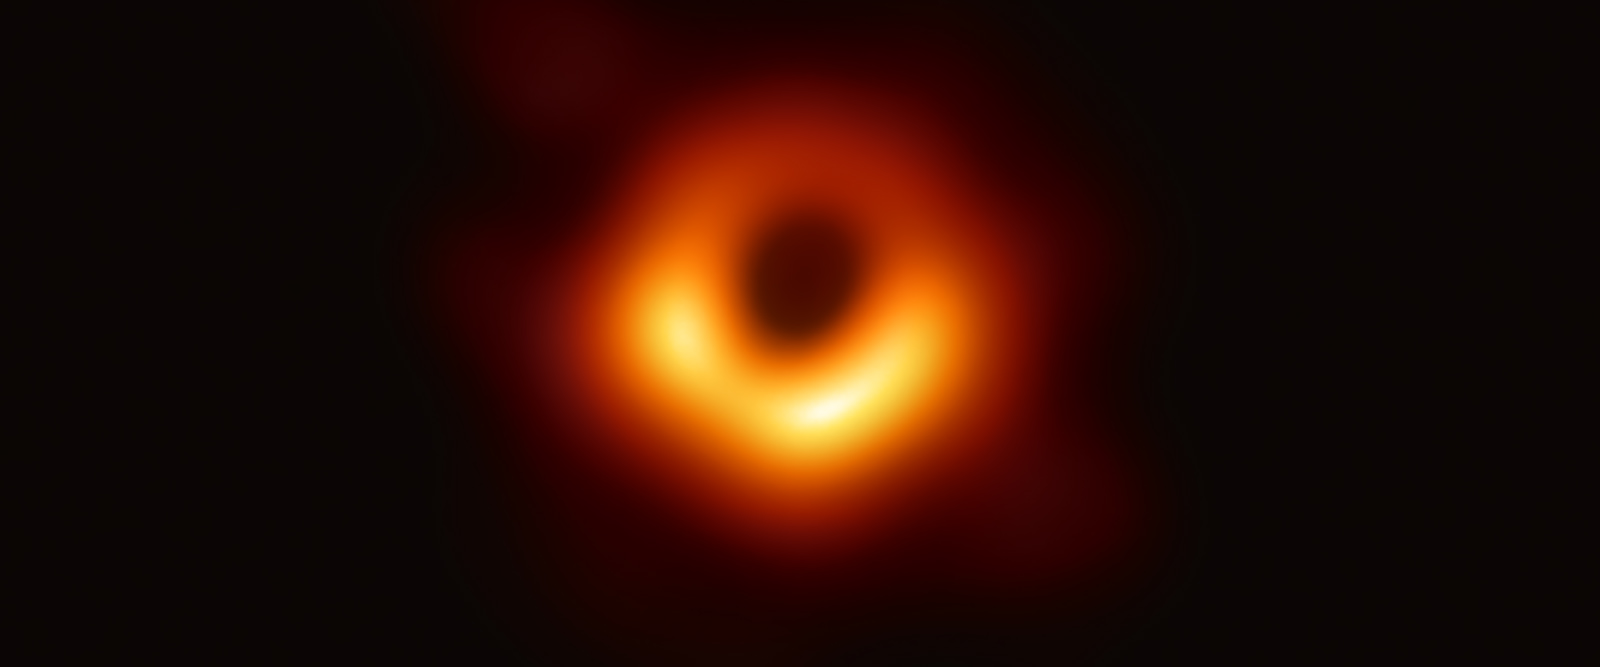 Say cheese, black hole! – you're on camera!